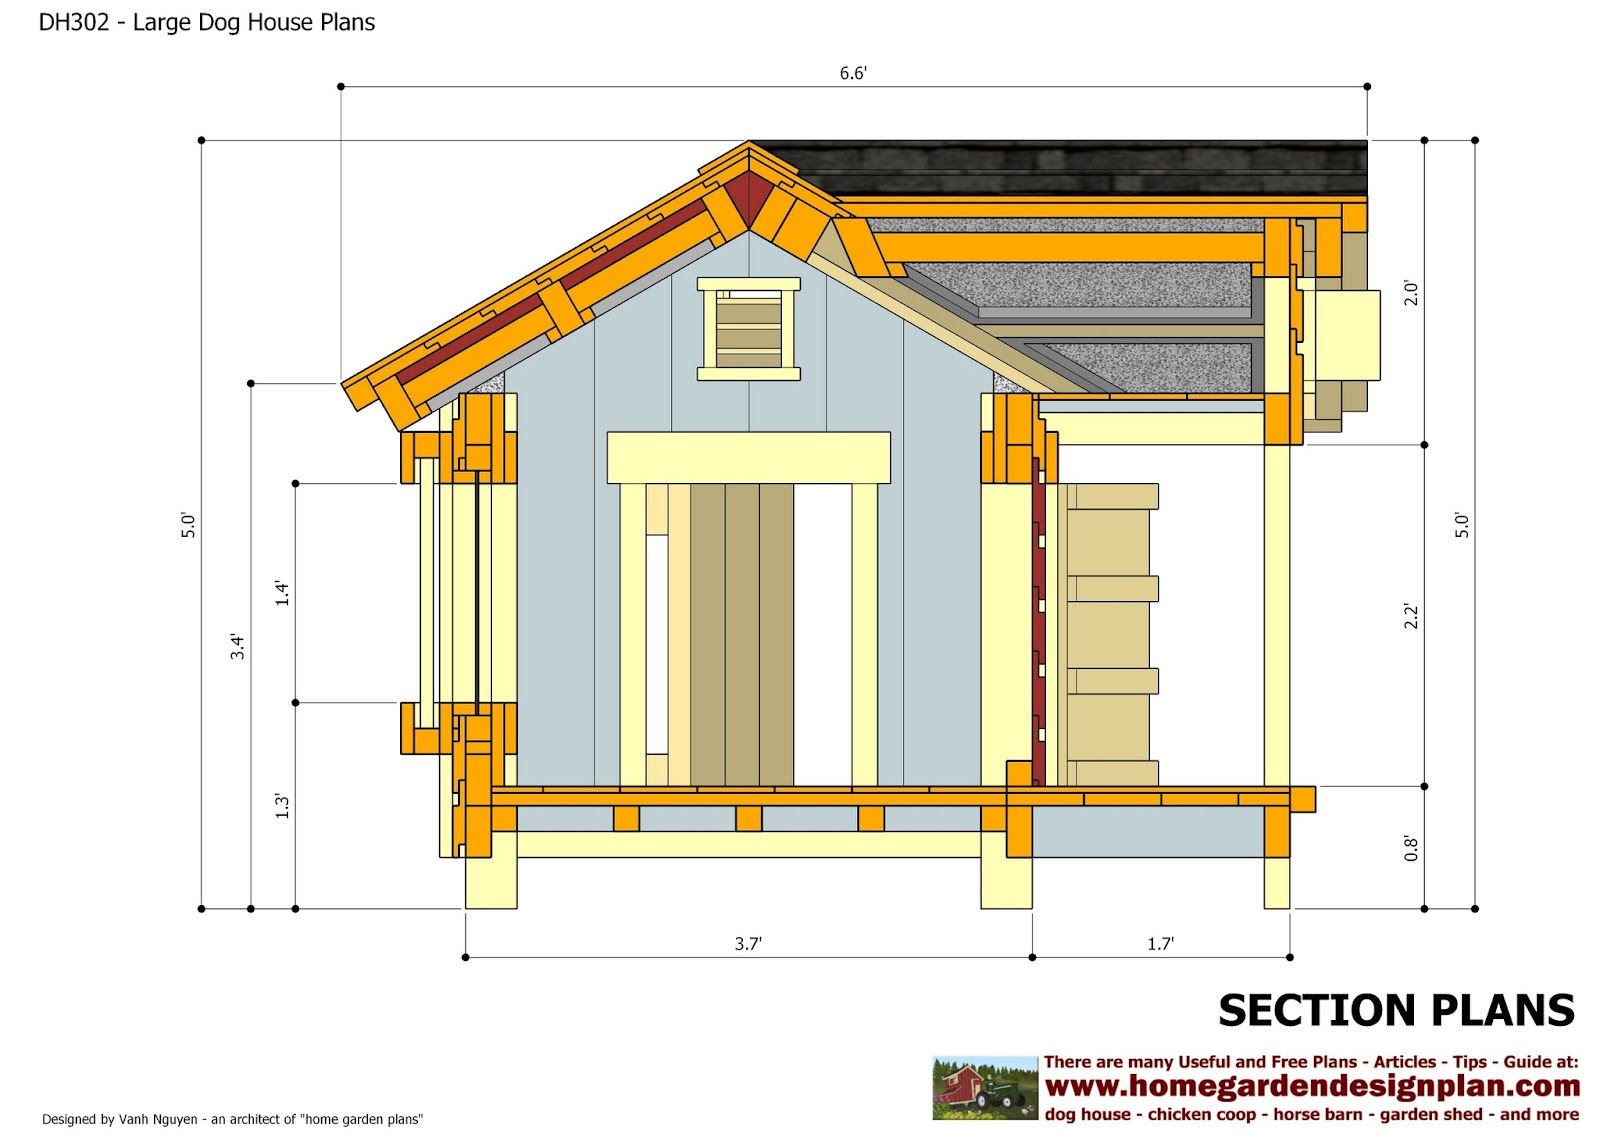 Insulated dog house plans for large dogs free - photo#28